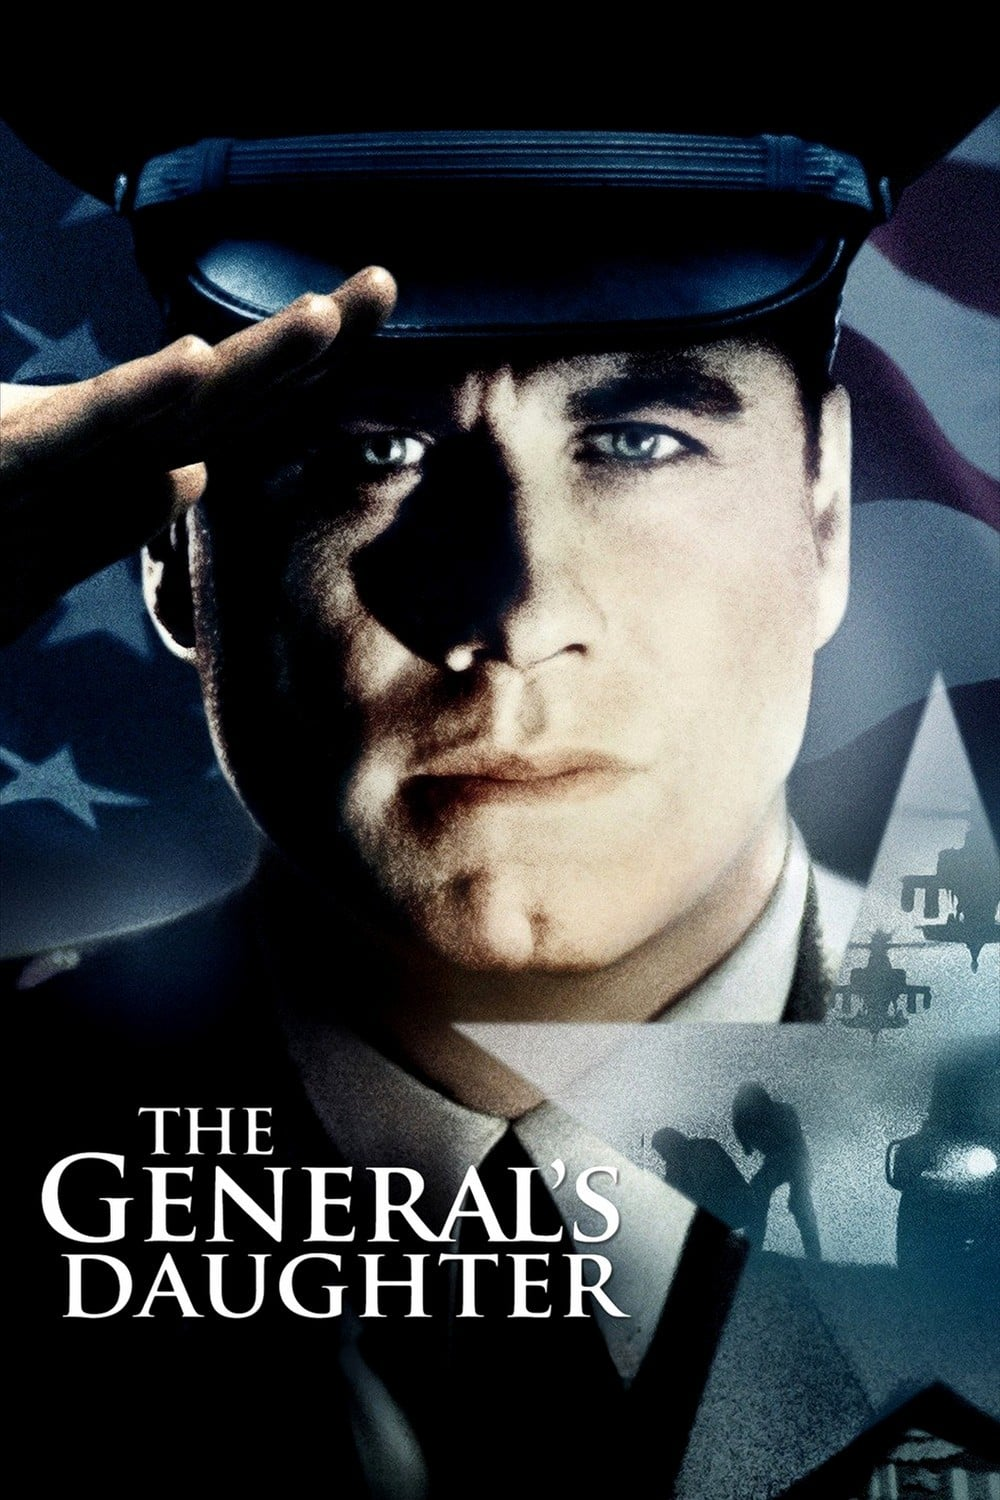 The general's daughter's